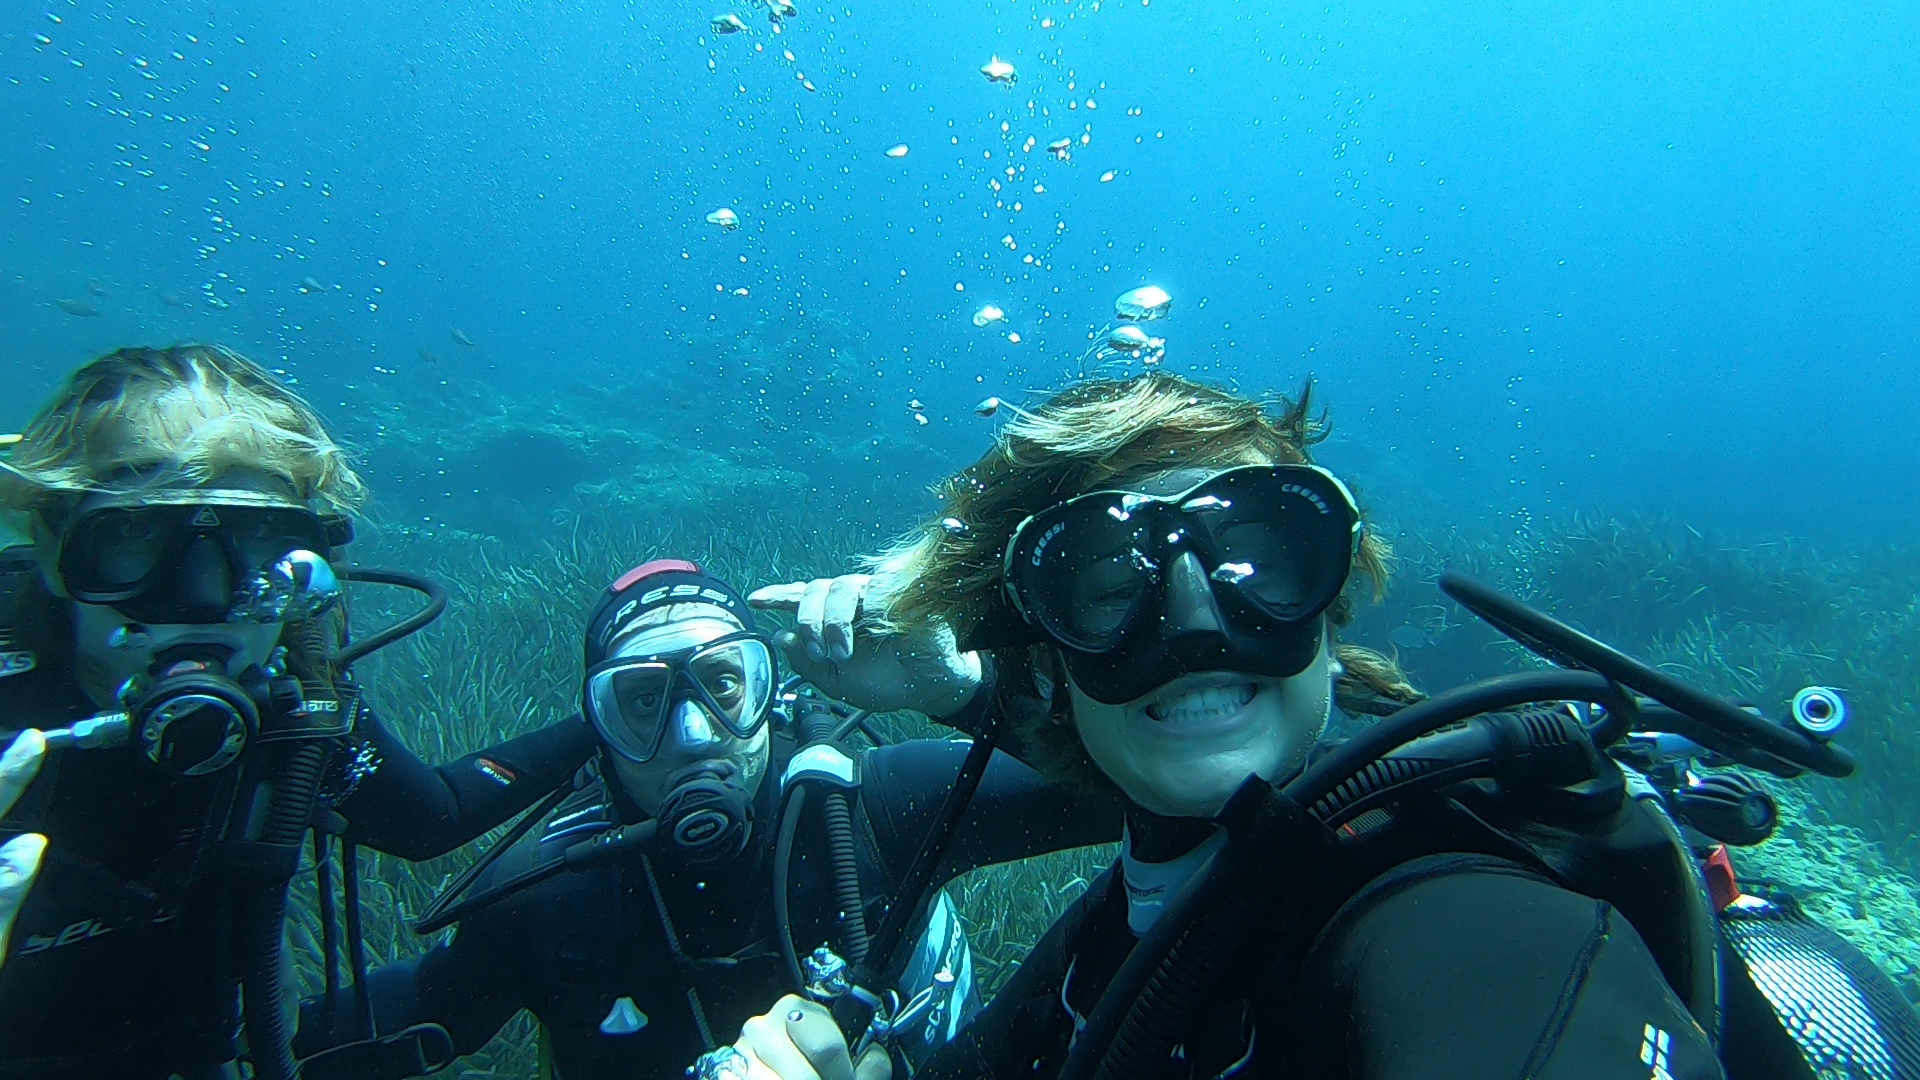 Mattia and Genny's Discover Scuba Diving with Elisa